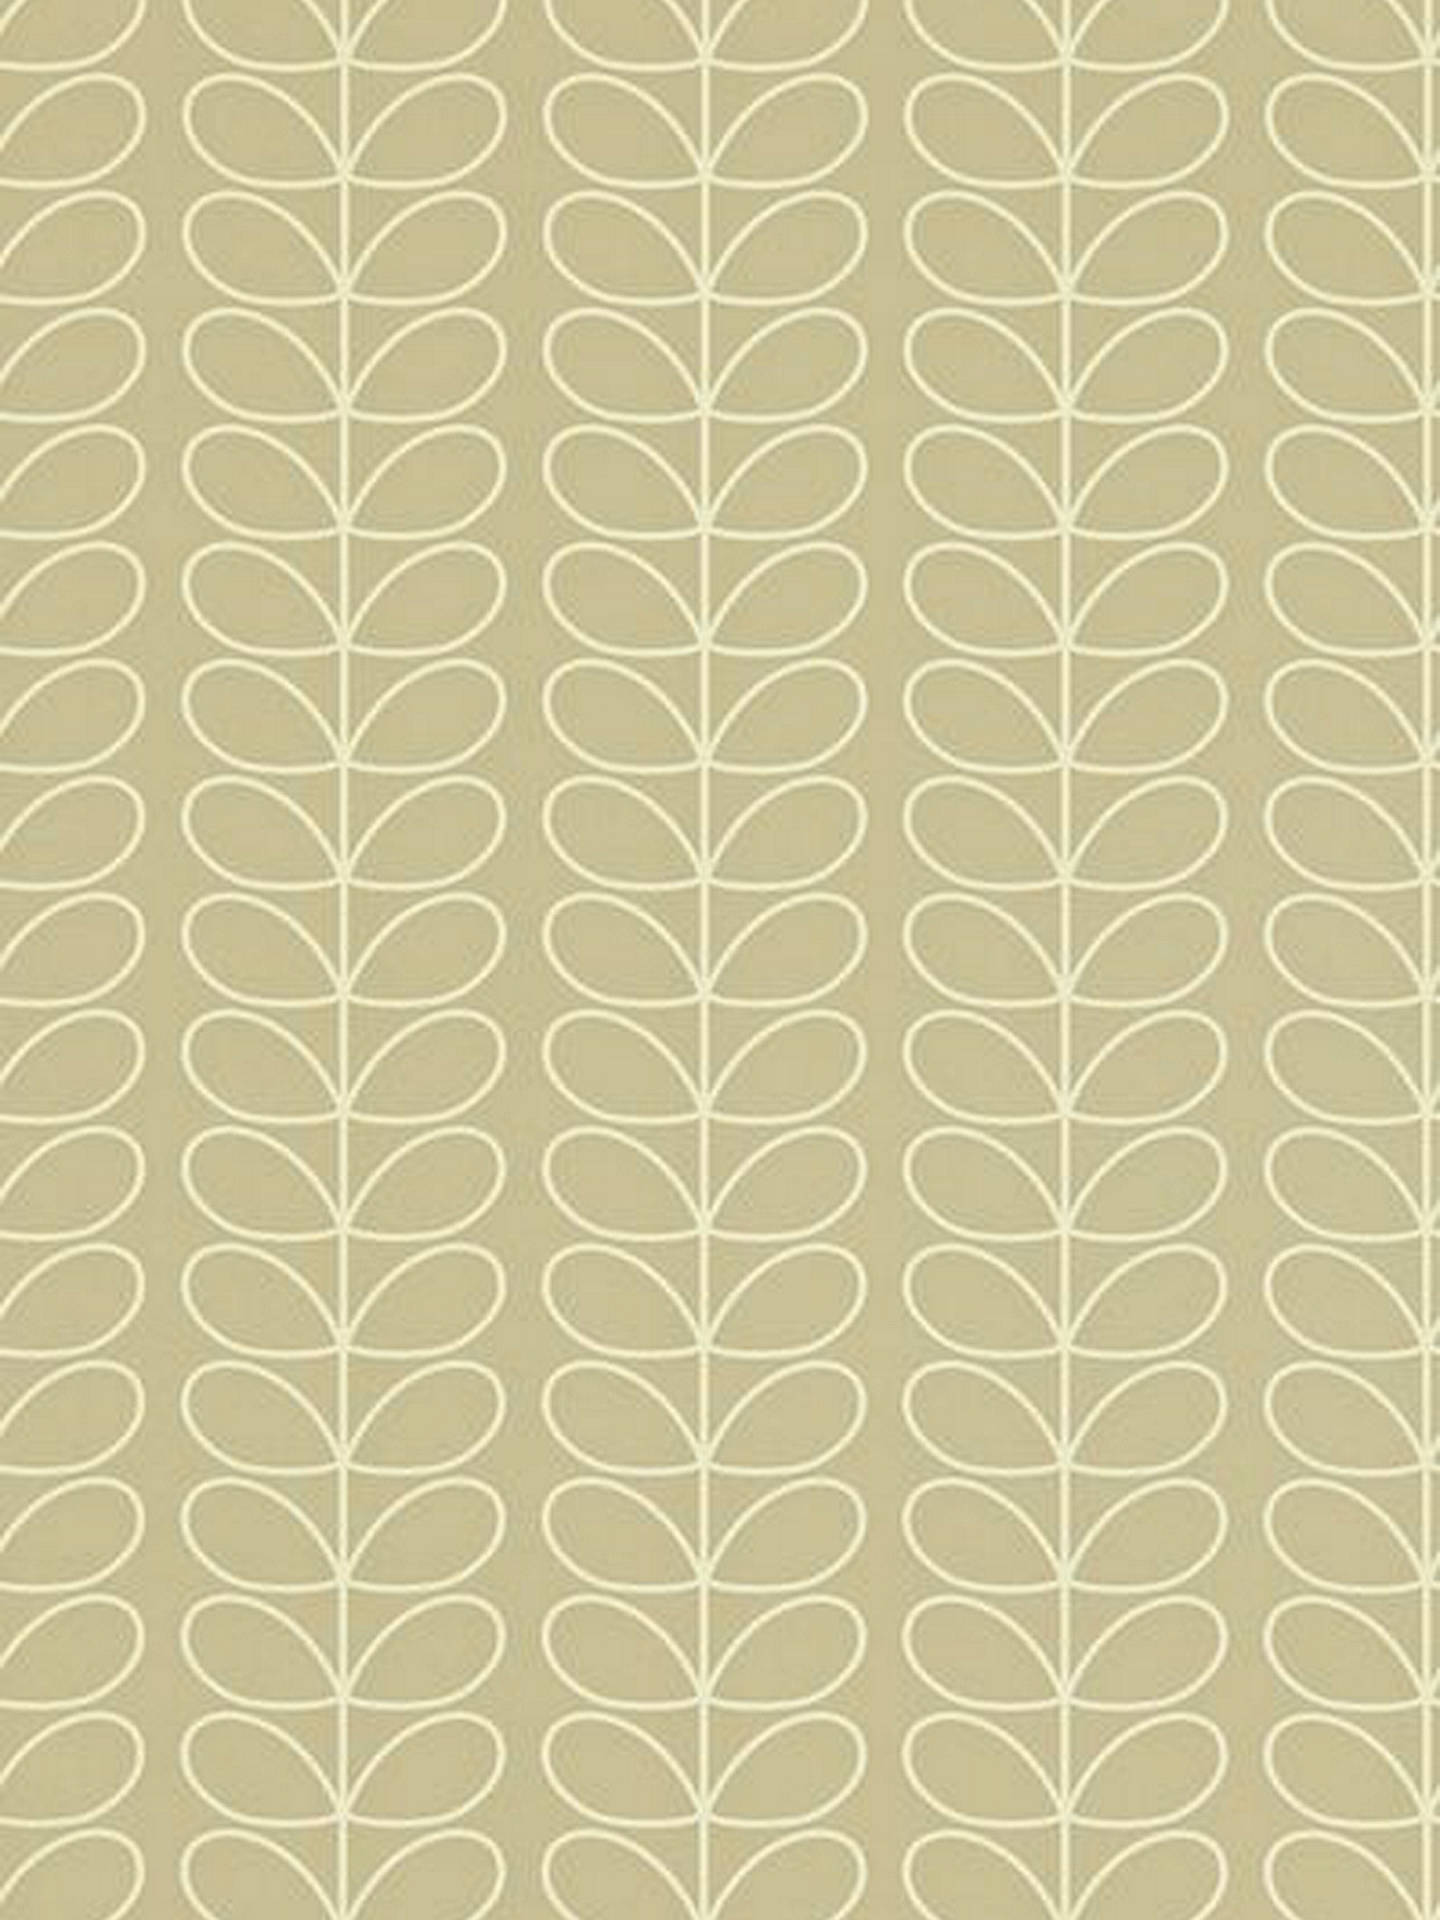 Buy Orla Kiely House for Harlequin Linear Stem Wallpaper, Natural, 110397 Online at johnlewis.com